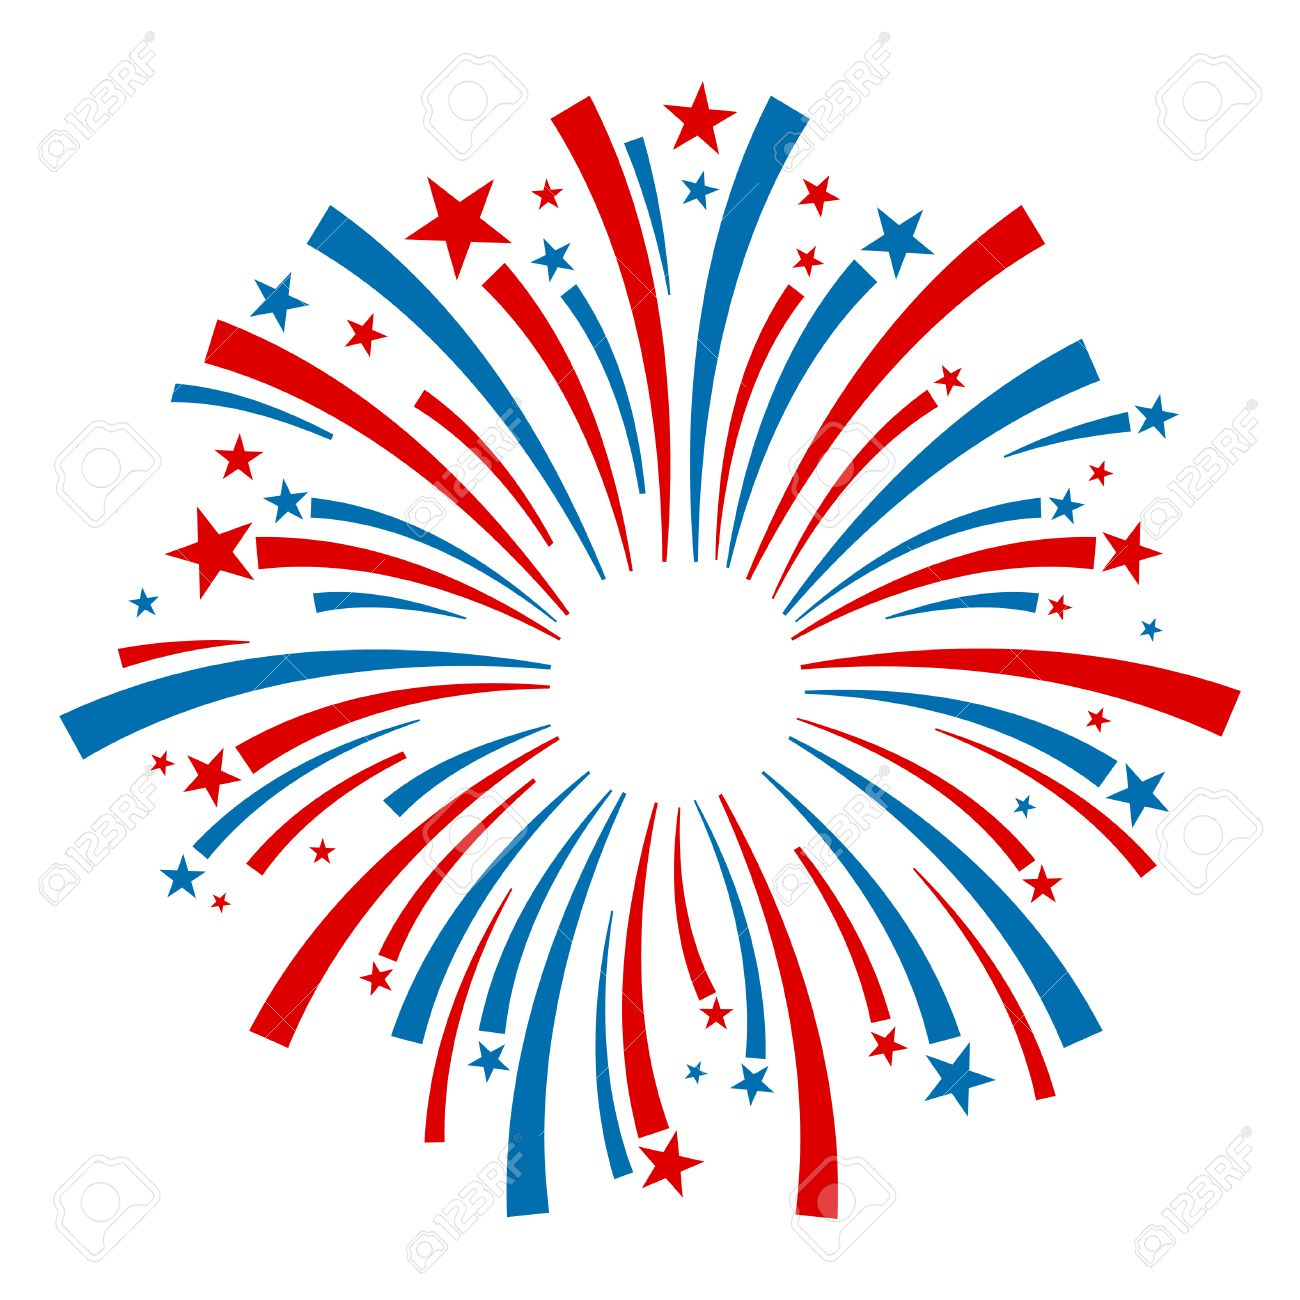 fireworks vector icon royalty free cliparts vectors and stock rh 123rf com vector fireworks free vector fireworks free